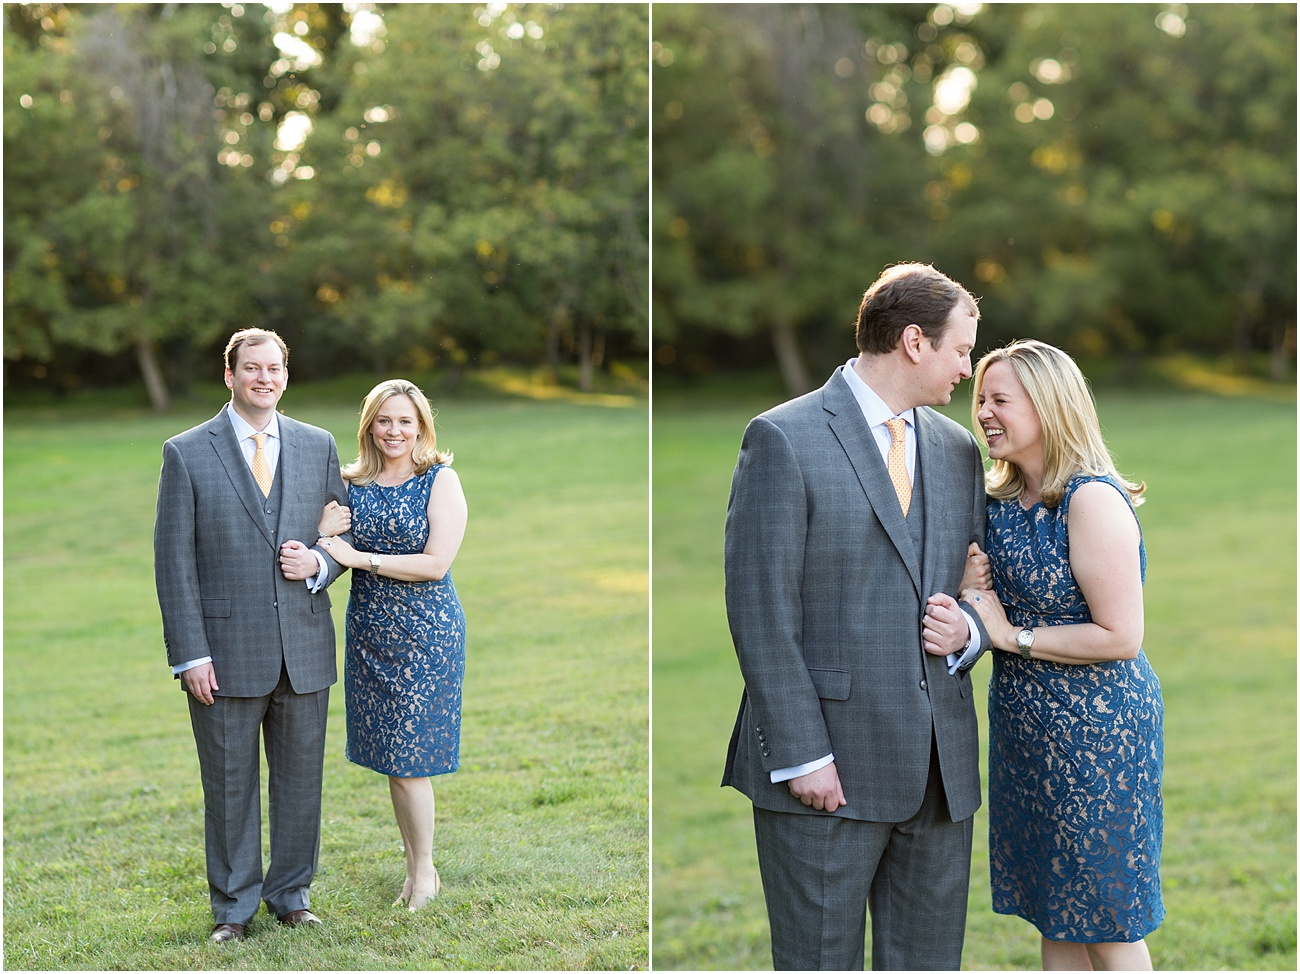 Antrim_1844_Engagement_Photography_Baltimore_Maryland_Wedding_Photographer_0001